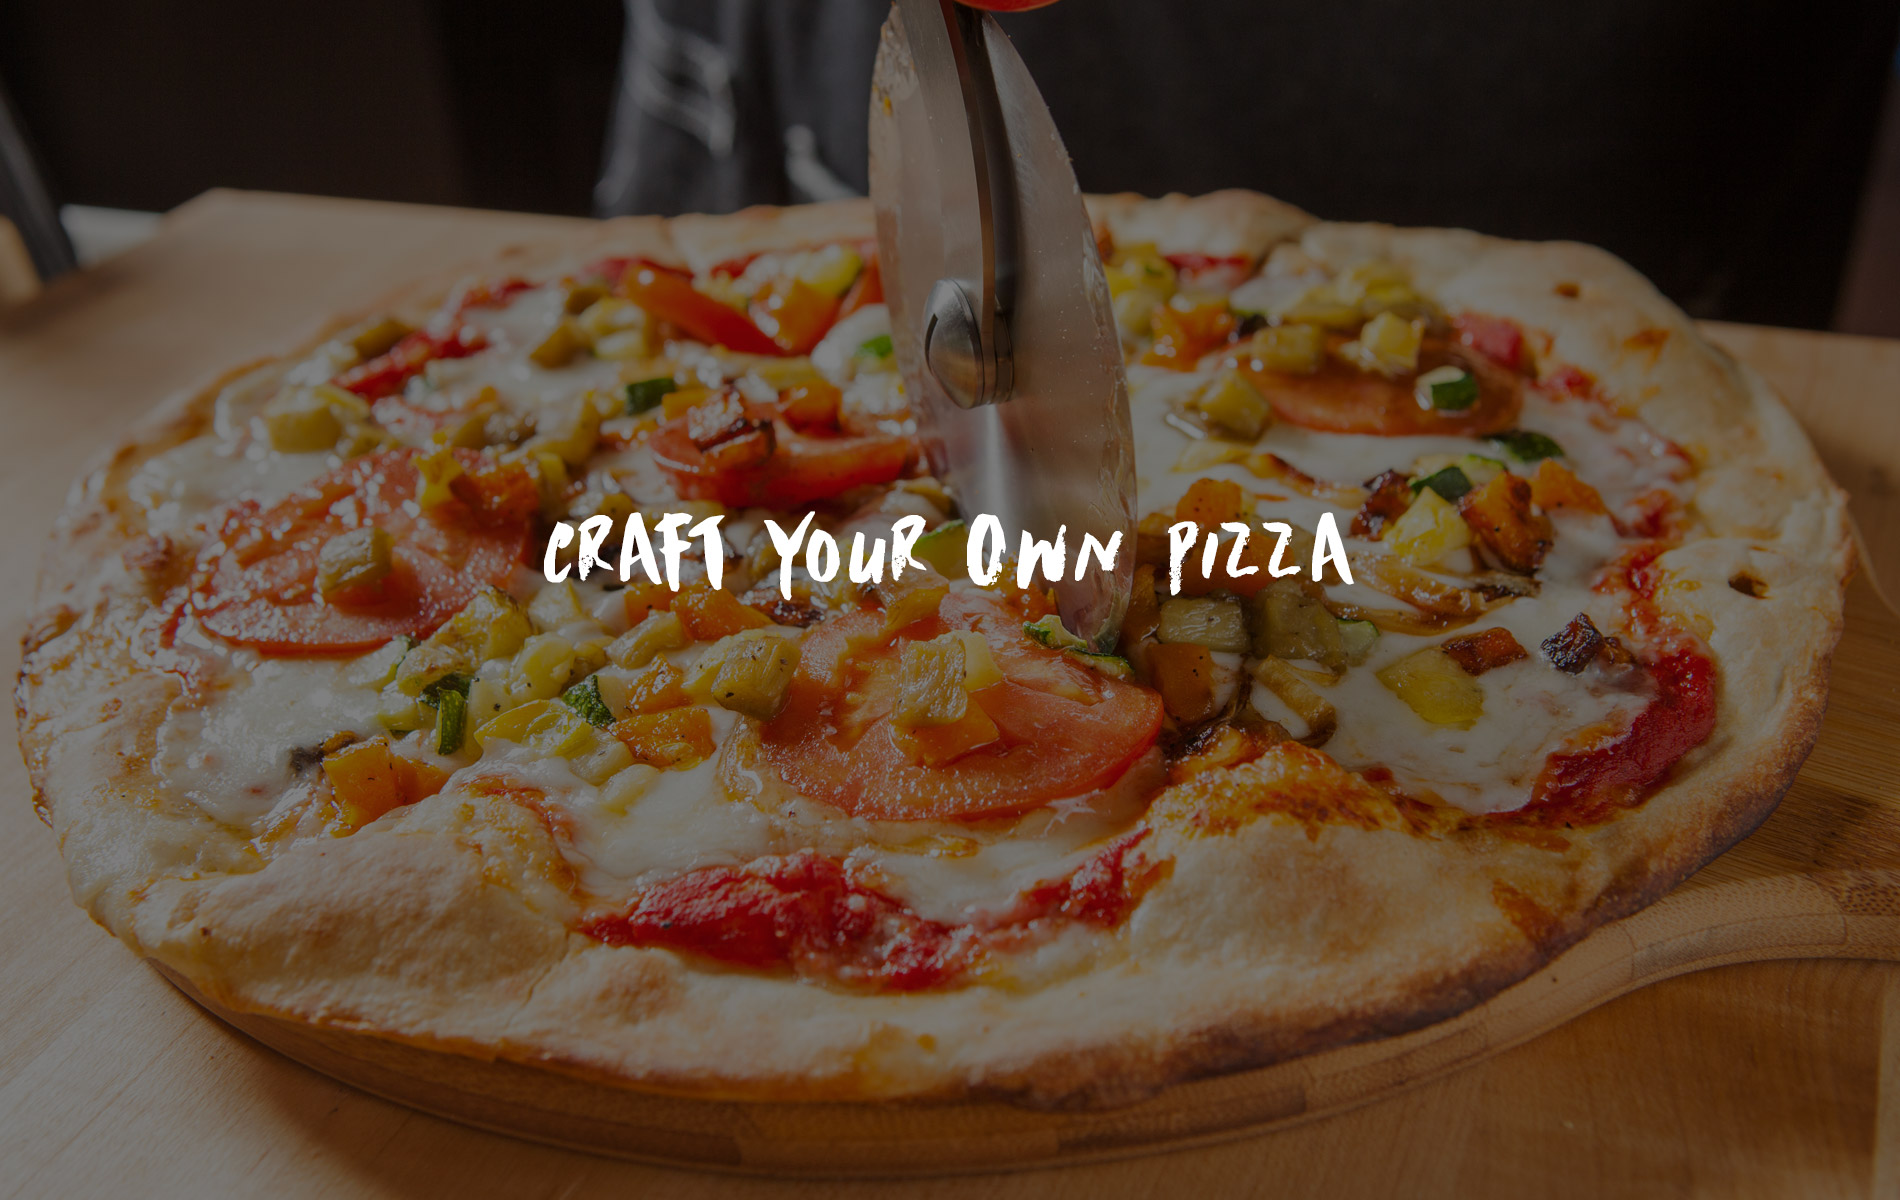 Craft Your Own Pizza